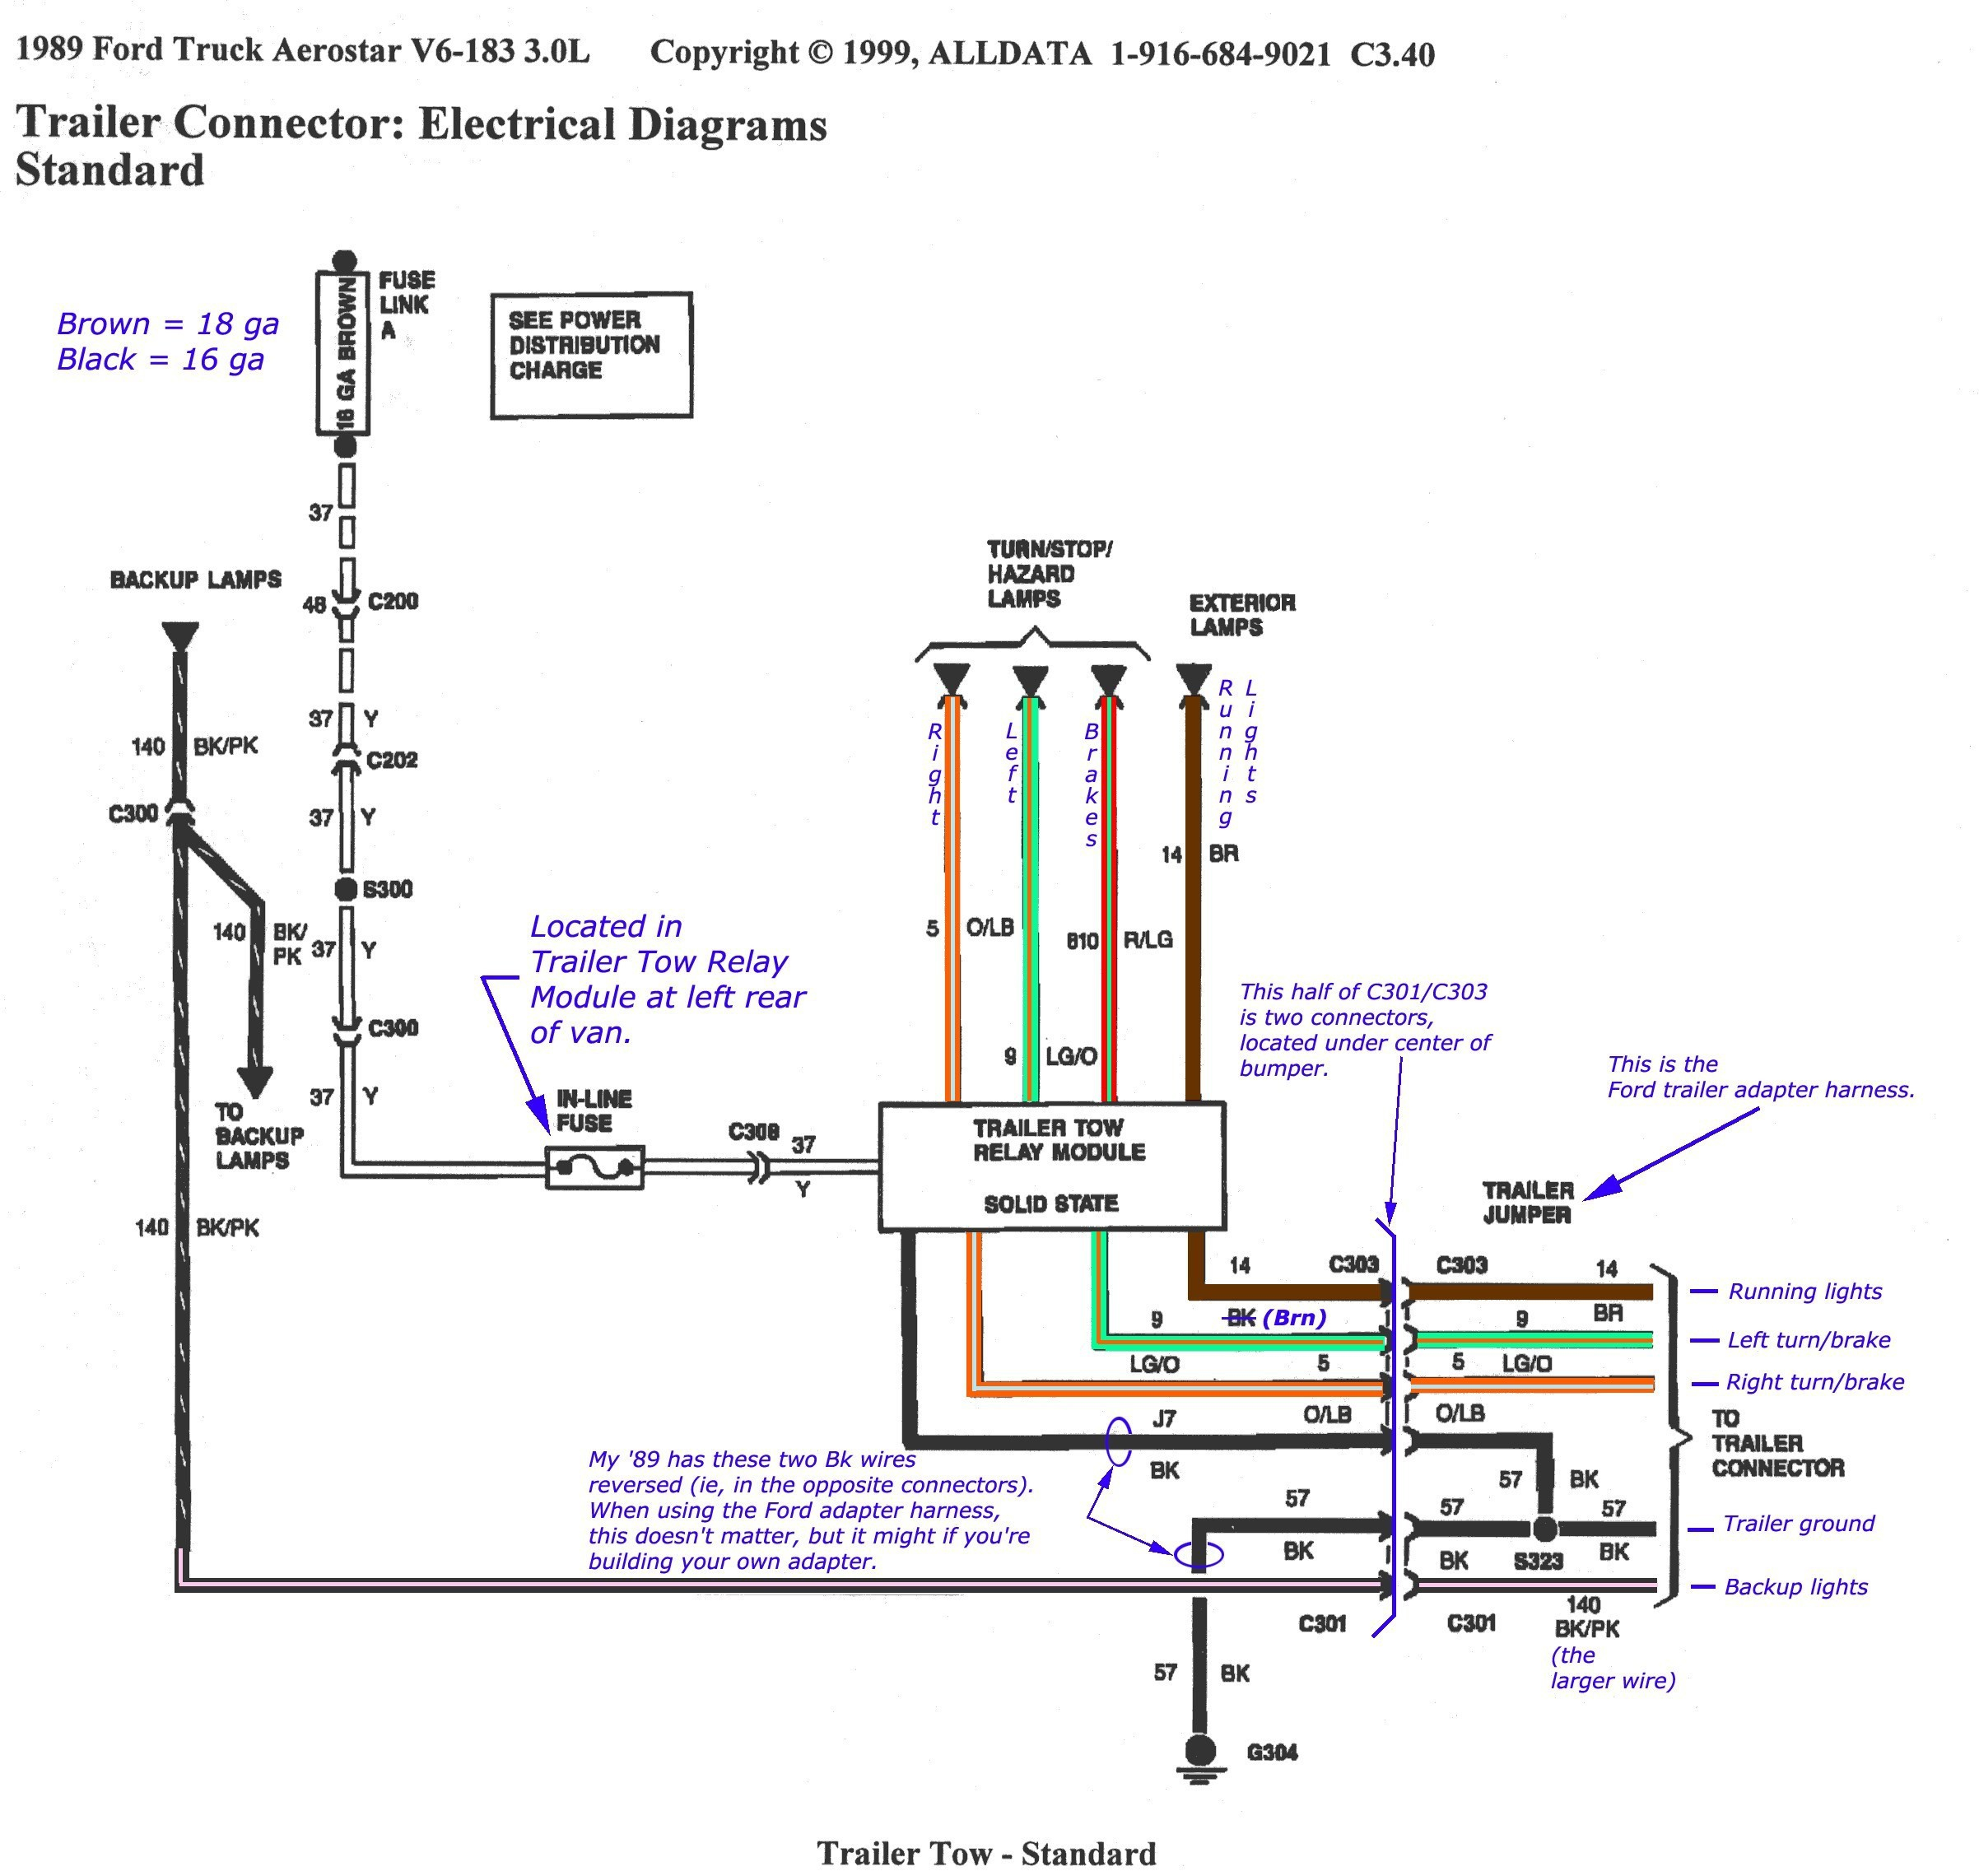 Great Dane Trailer Wiring Diagram